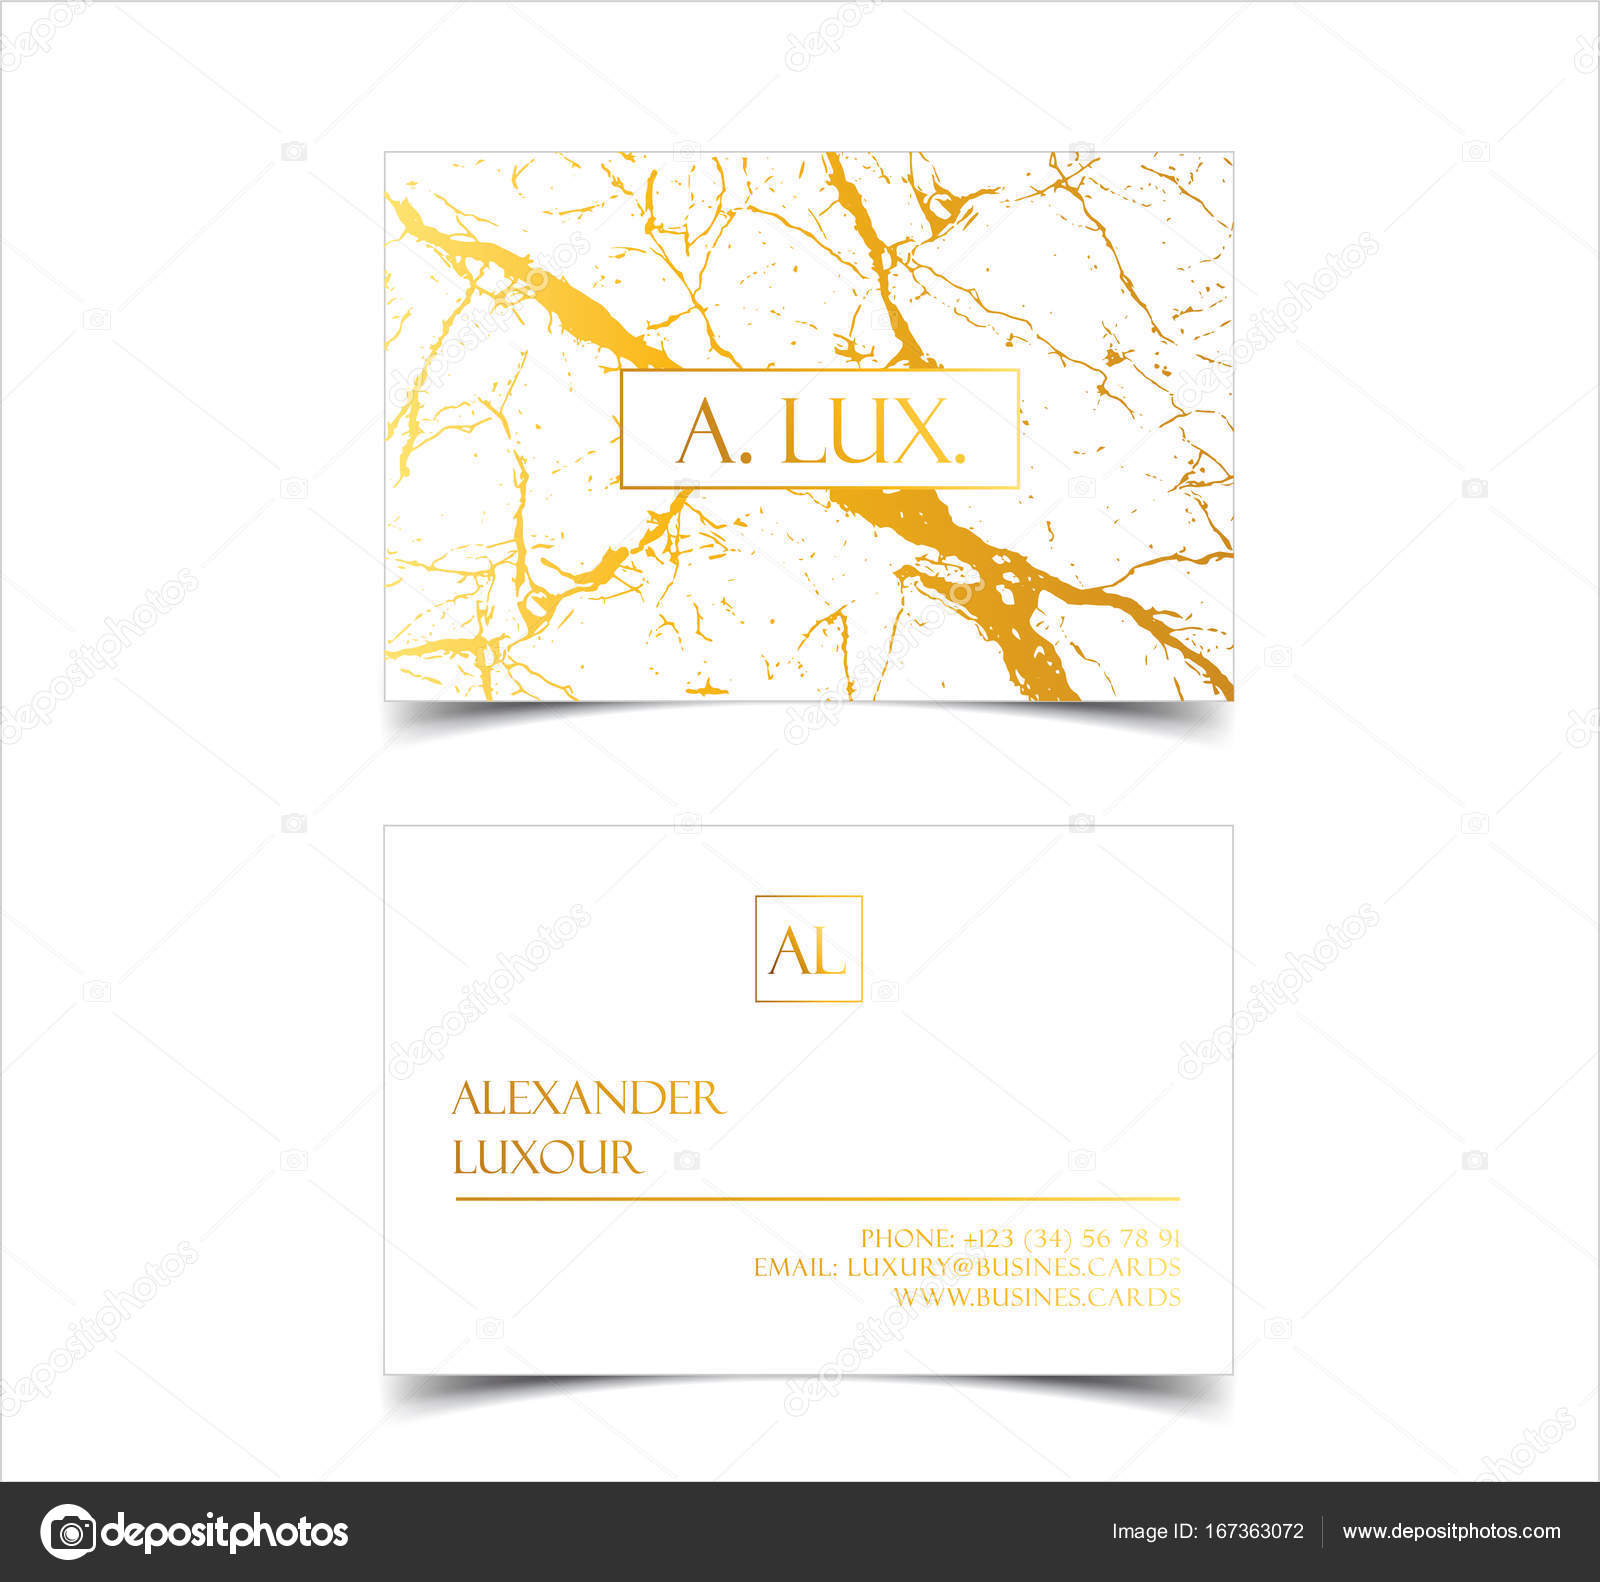 Elegant White Luxury Business Cards With Marble Texture And Gold Detail Vector Template Banner Or Invitation With Golden Foil Details Branding And Identity Graphic Design Stock Vector C Volmon Tut By 167363072